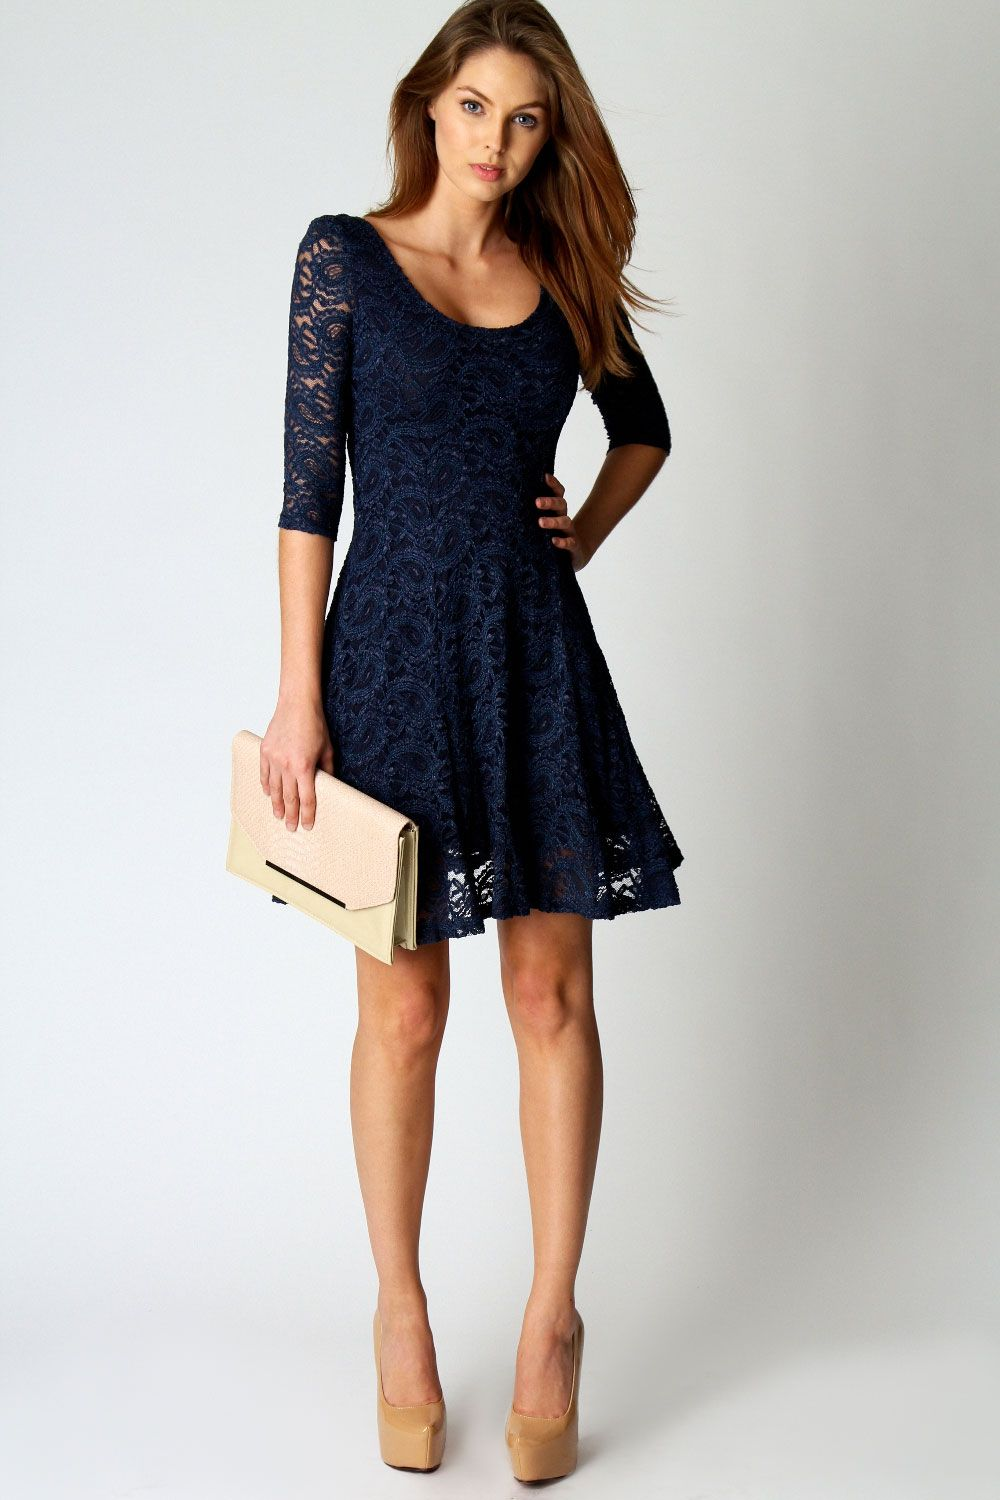 Pin by sophia meyer on i want pinterest navy lace lace dress